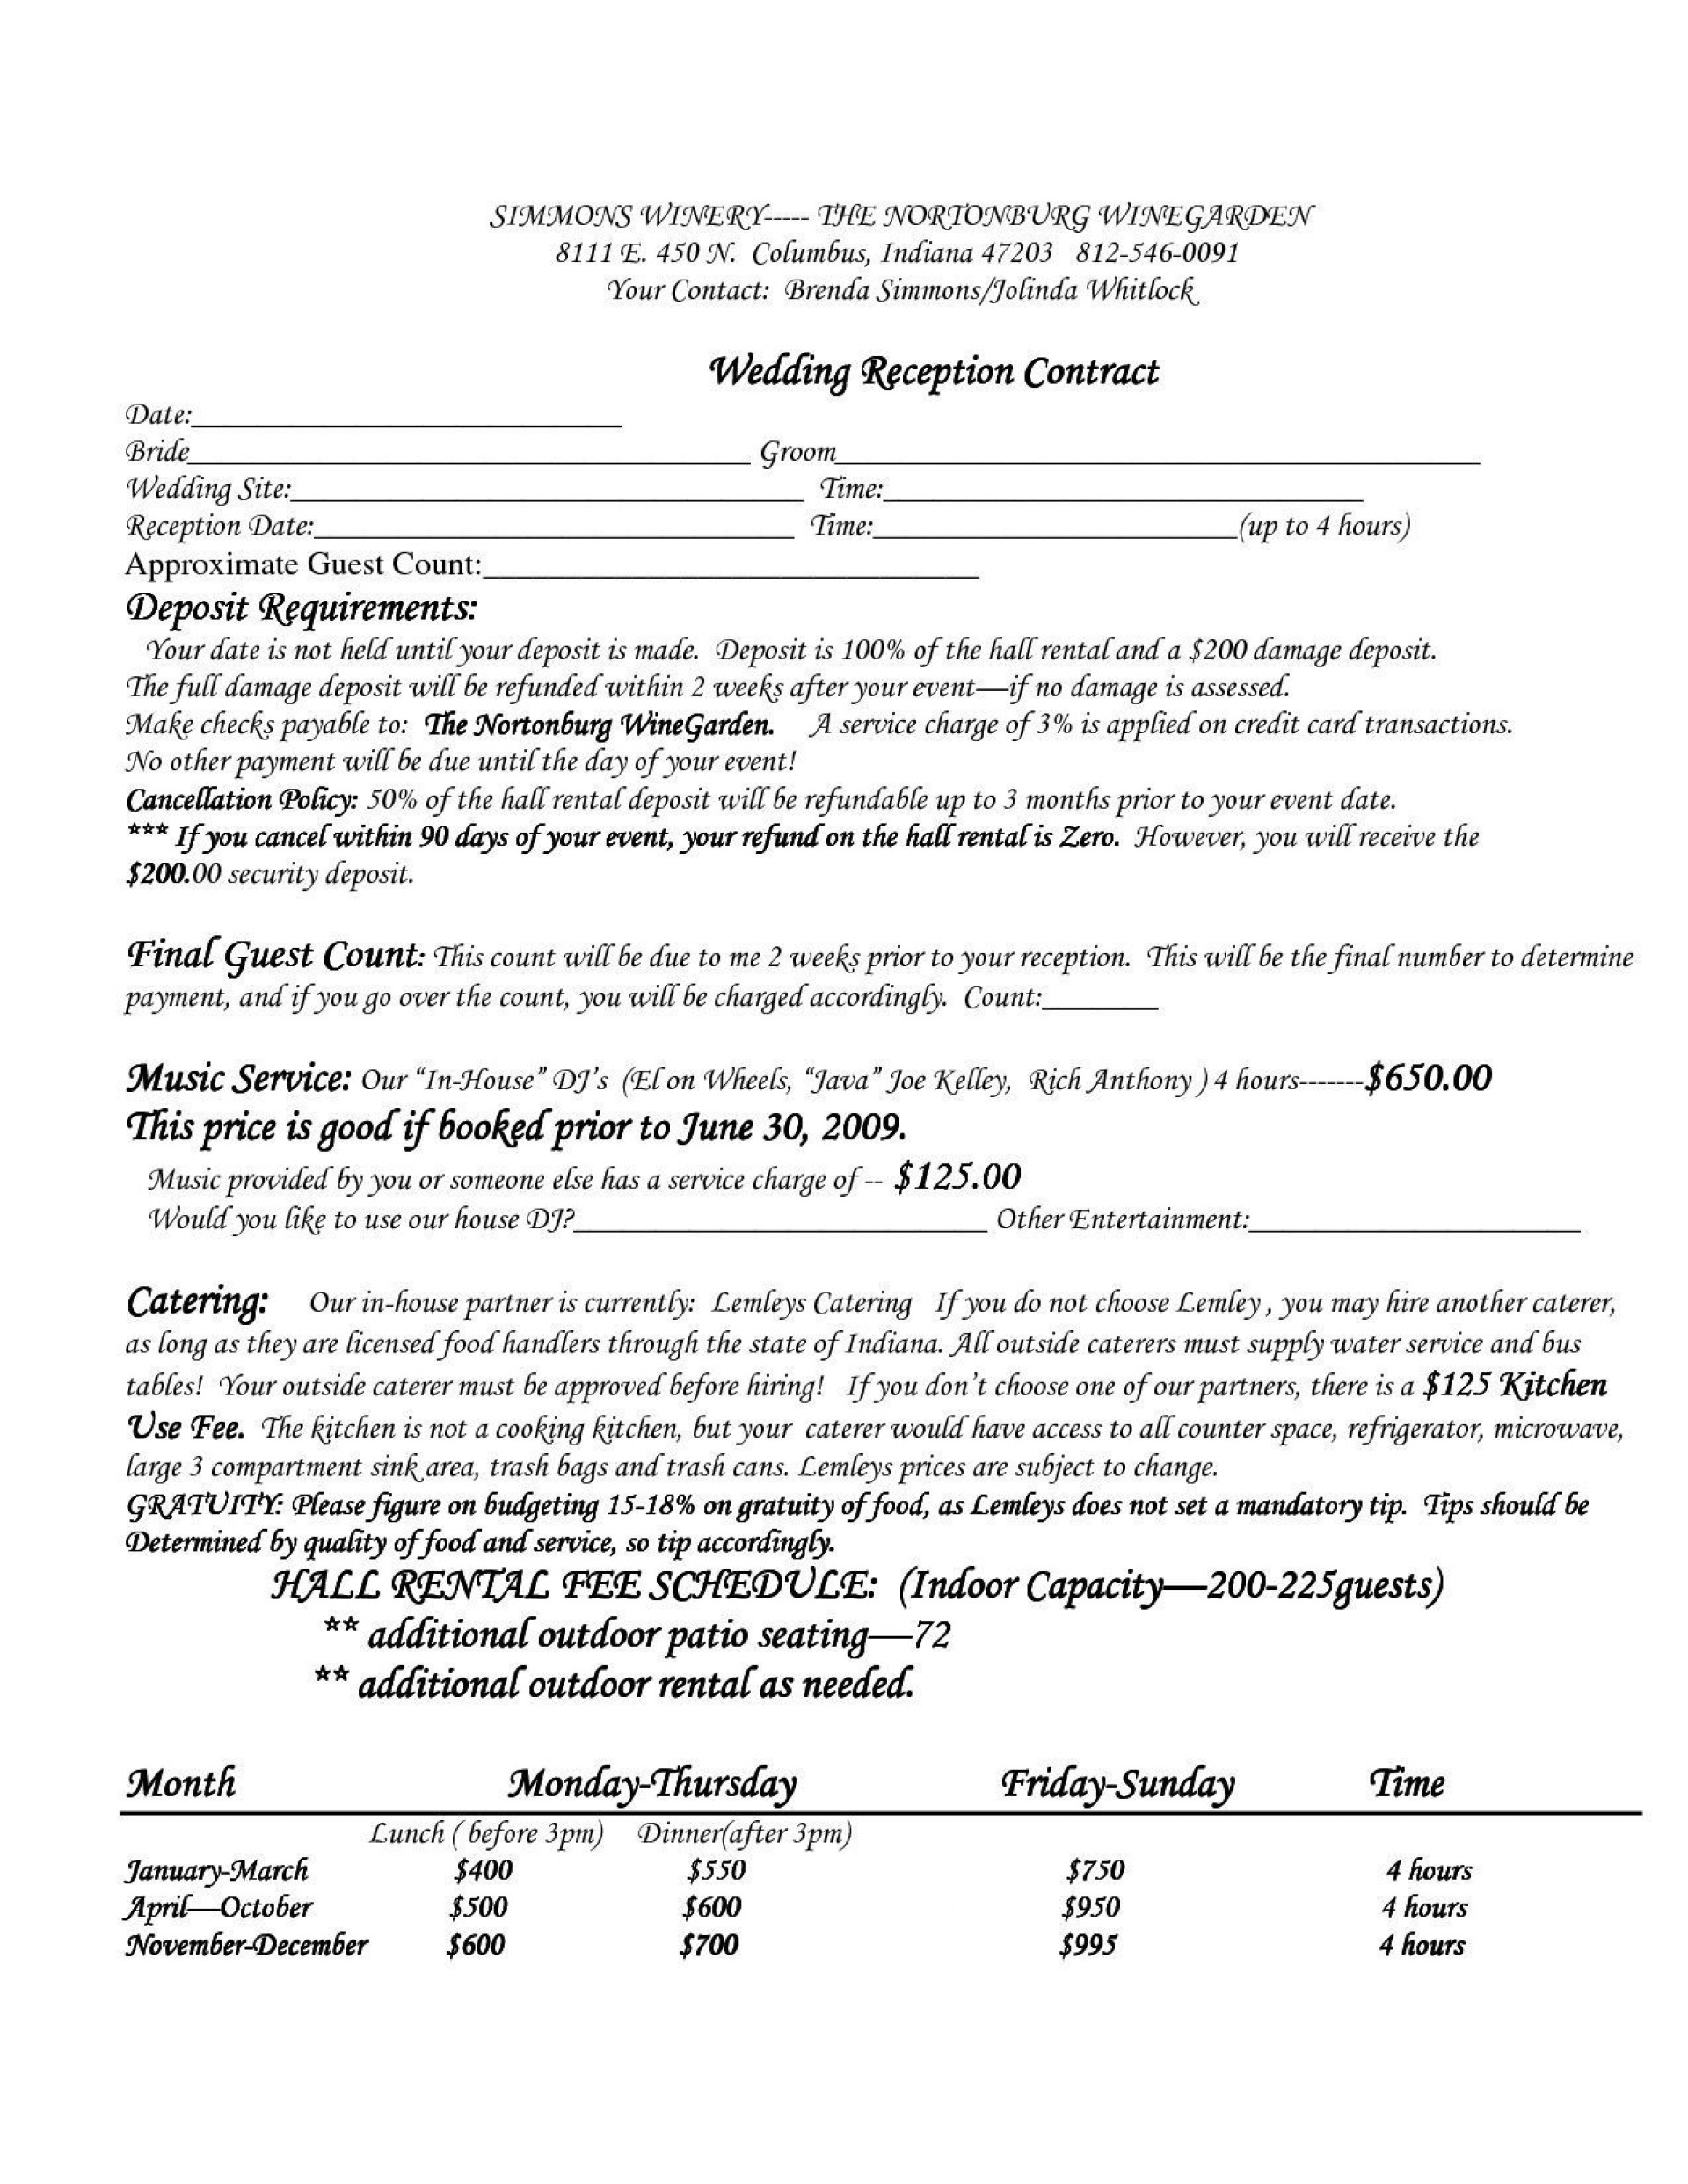 005 Sensational Wedding Venue Contract Template Design  Hire Sample Agreement1920